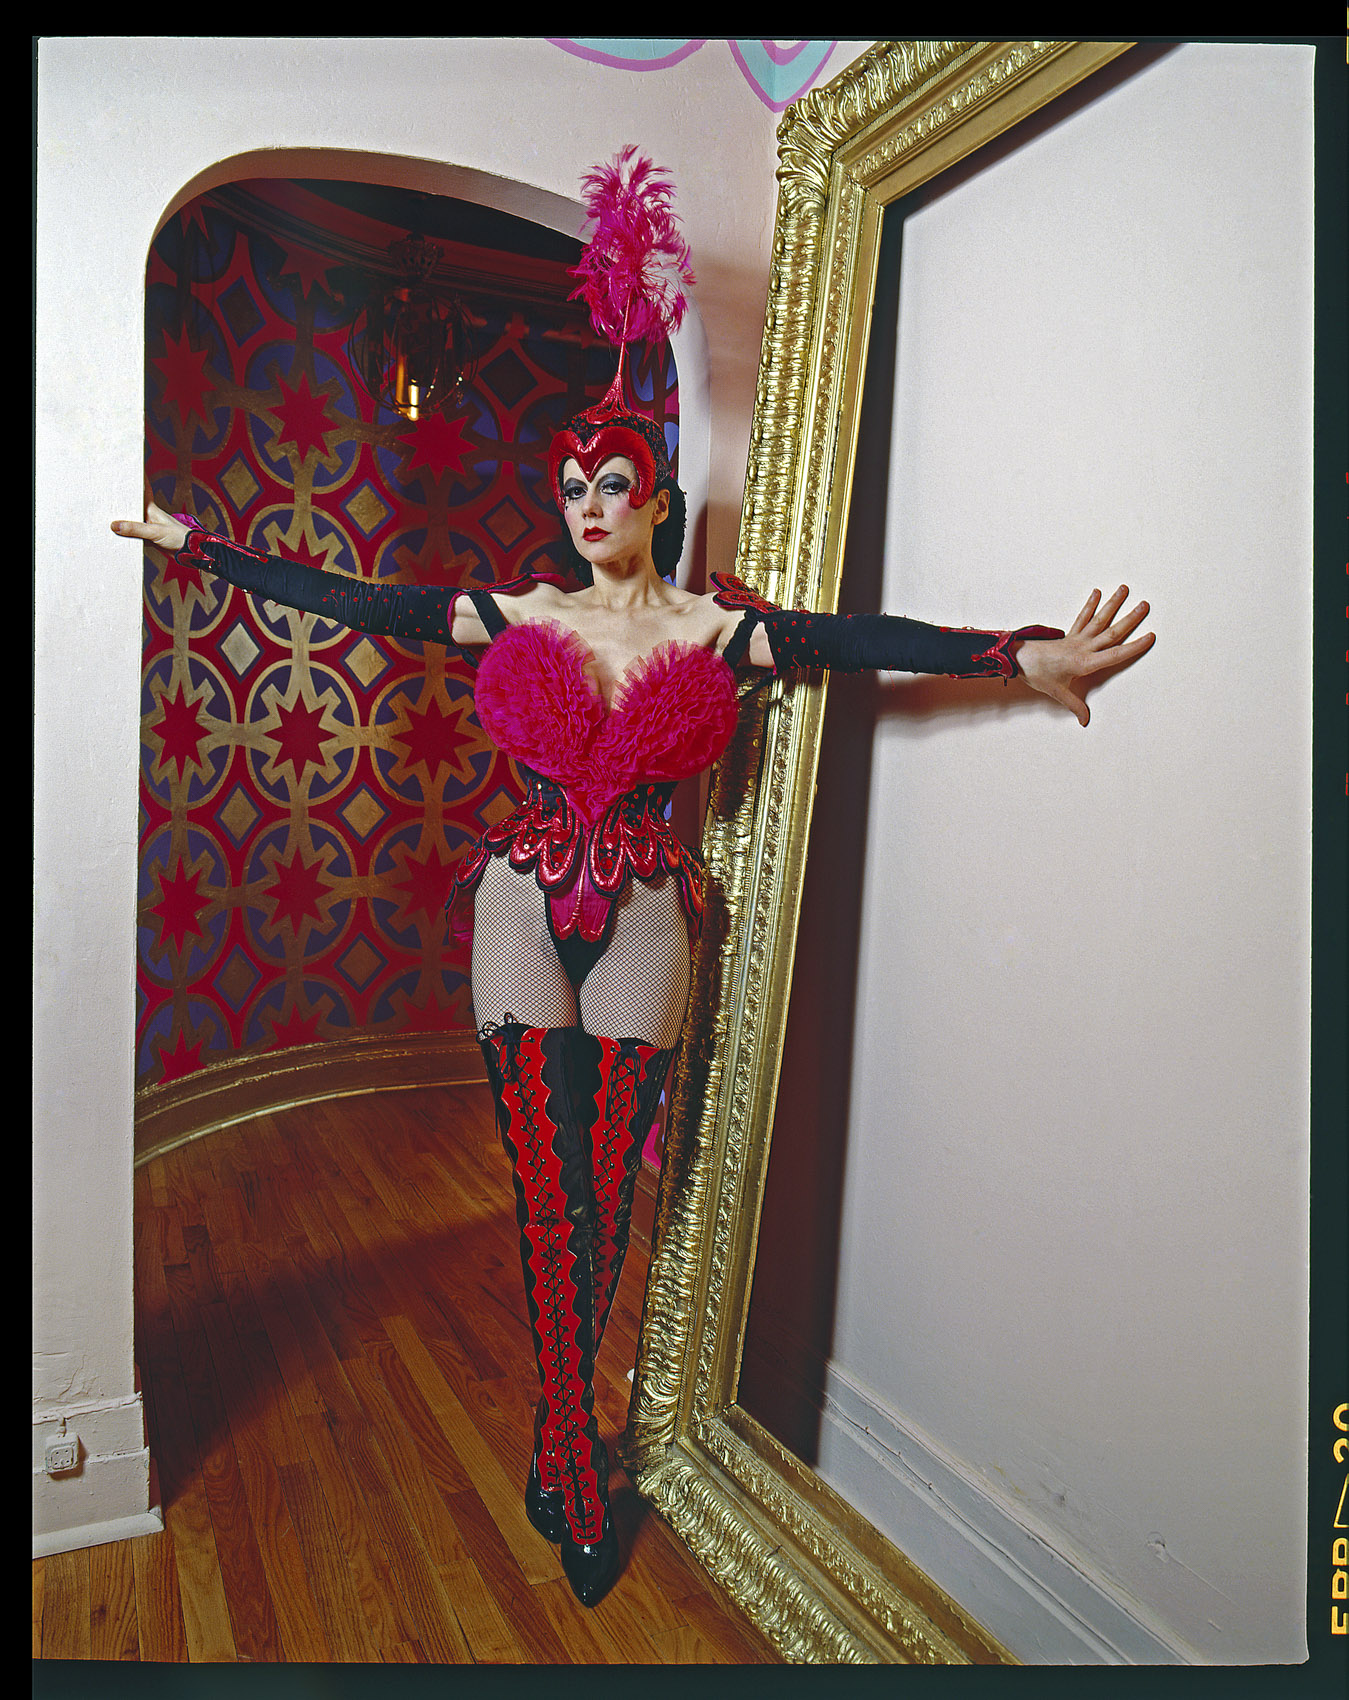 Bartsch at the Chelsea Hotel